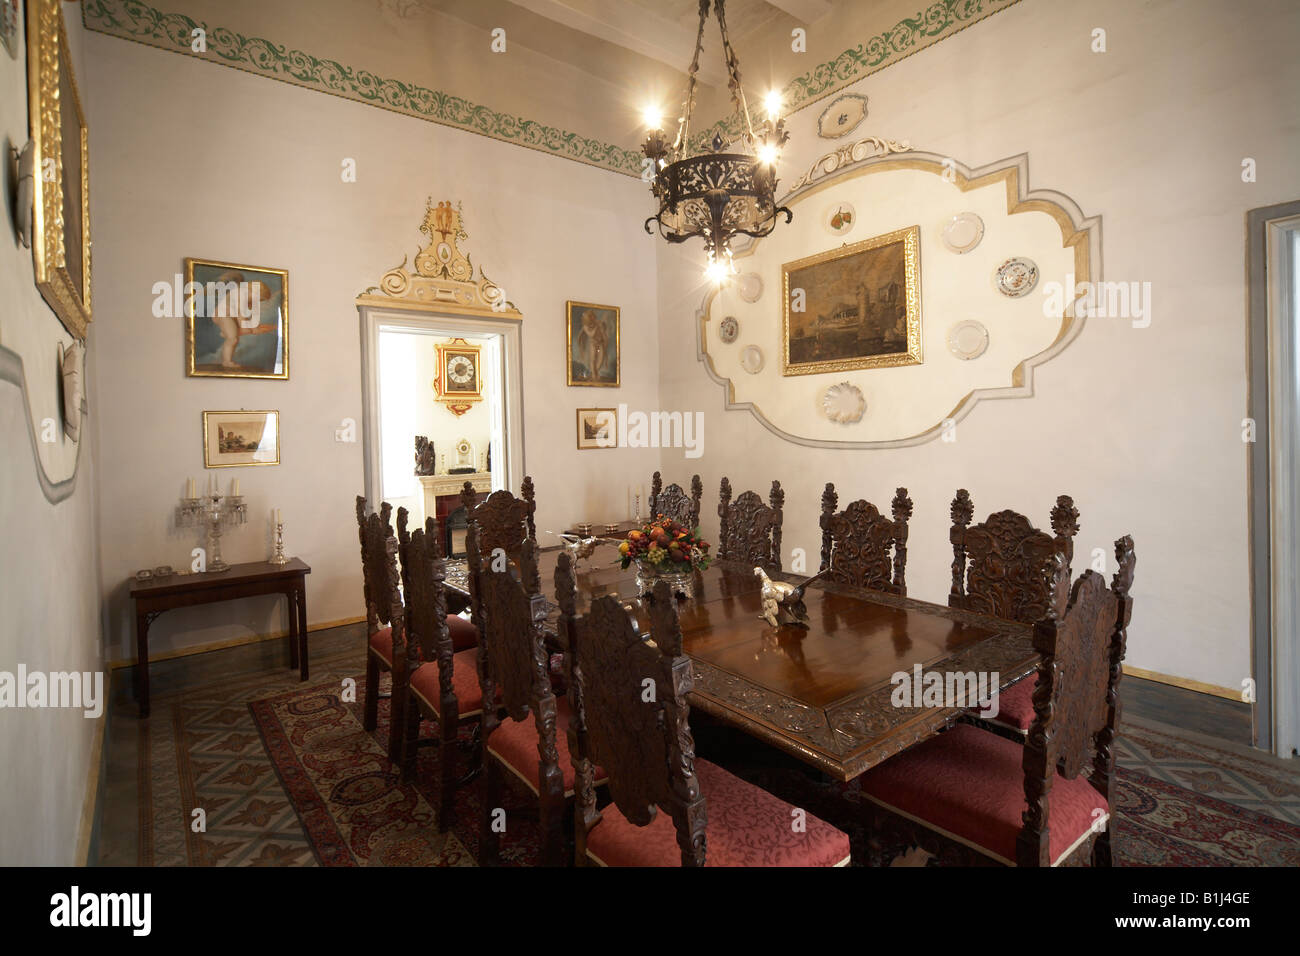 Dining Room Large Wooden Table With Chairs In Casa Rocca Piccola Grand Historic 16C Maltese Palazzo House Valletta Malta